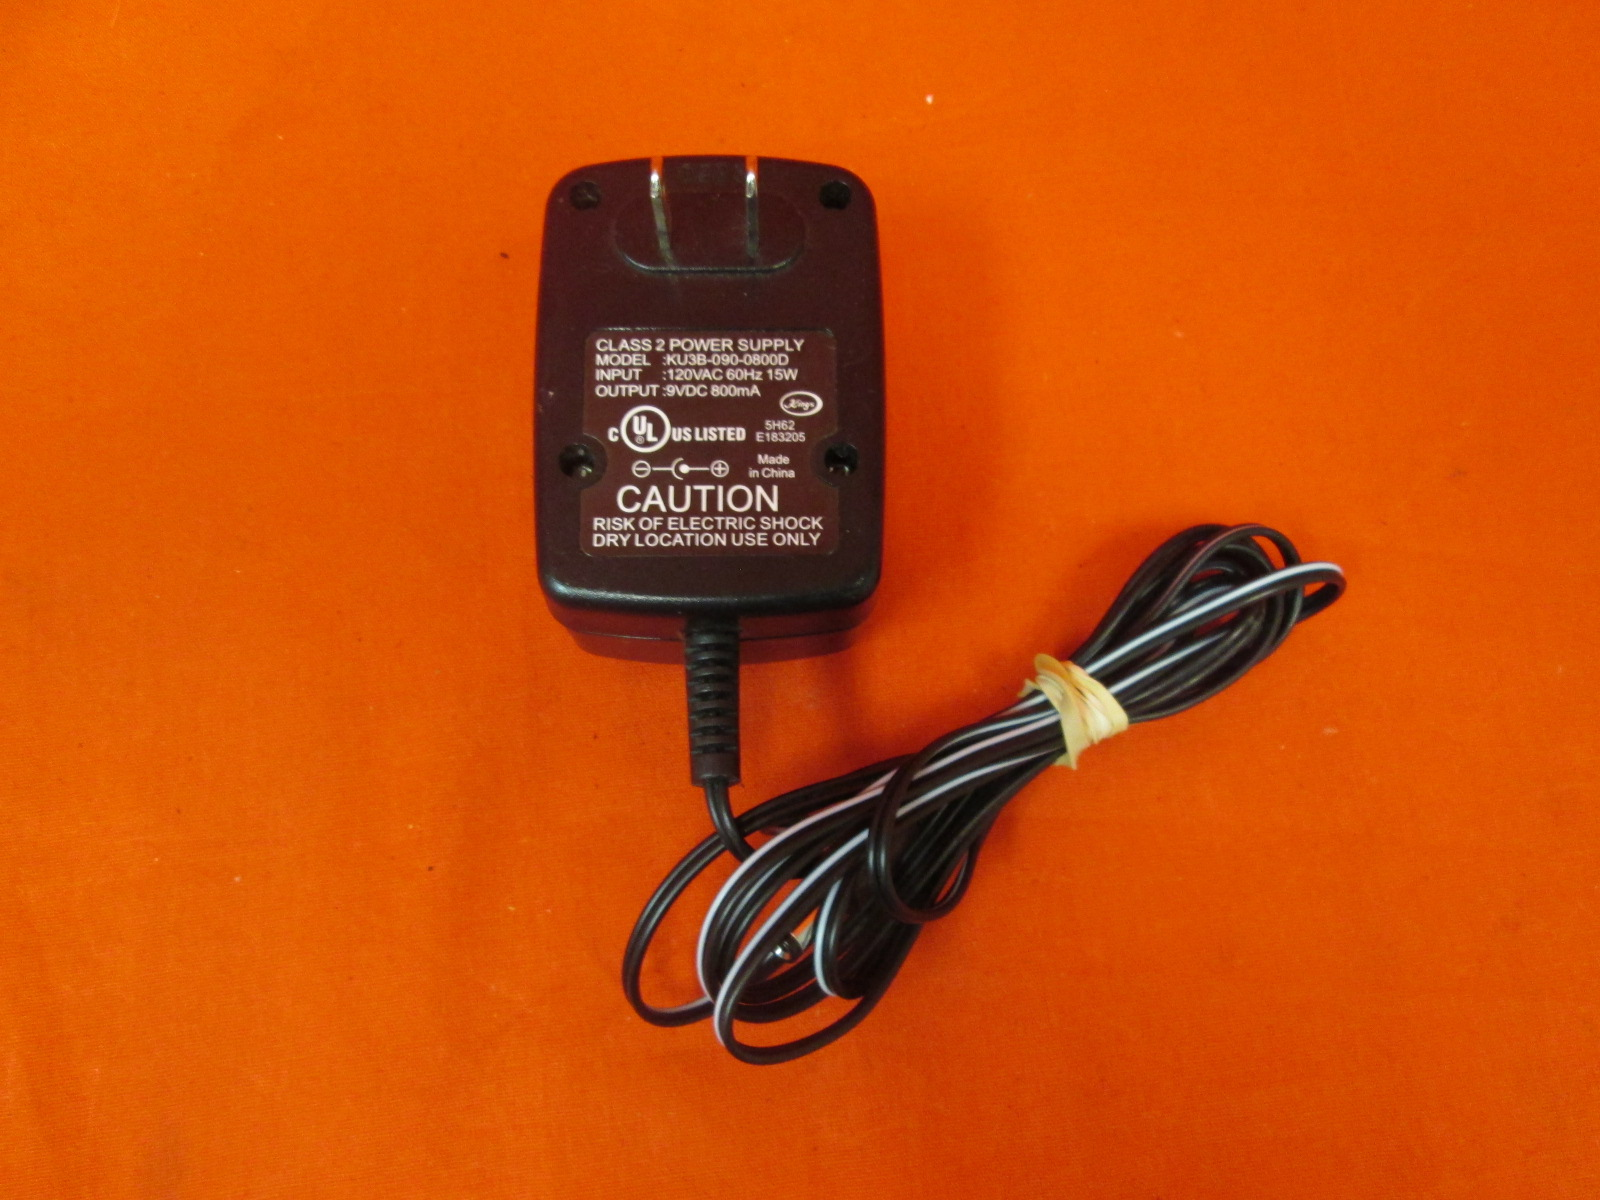 AC Adapter For Power Supply Model: KU3B-090-0800D Class 2 Power Supply